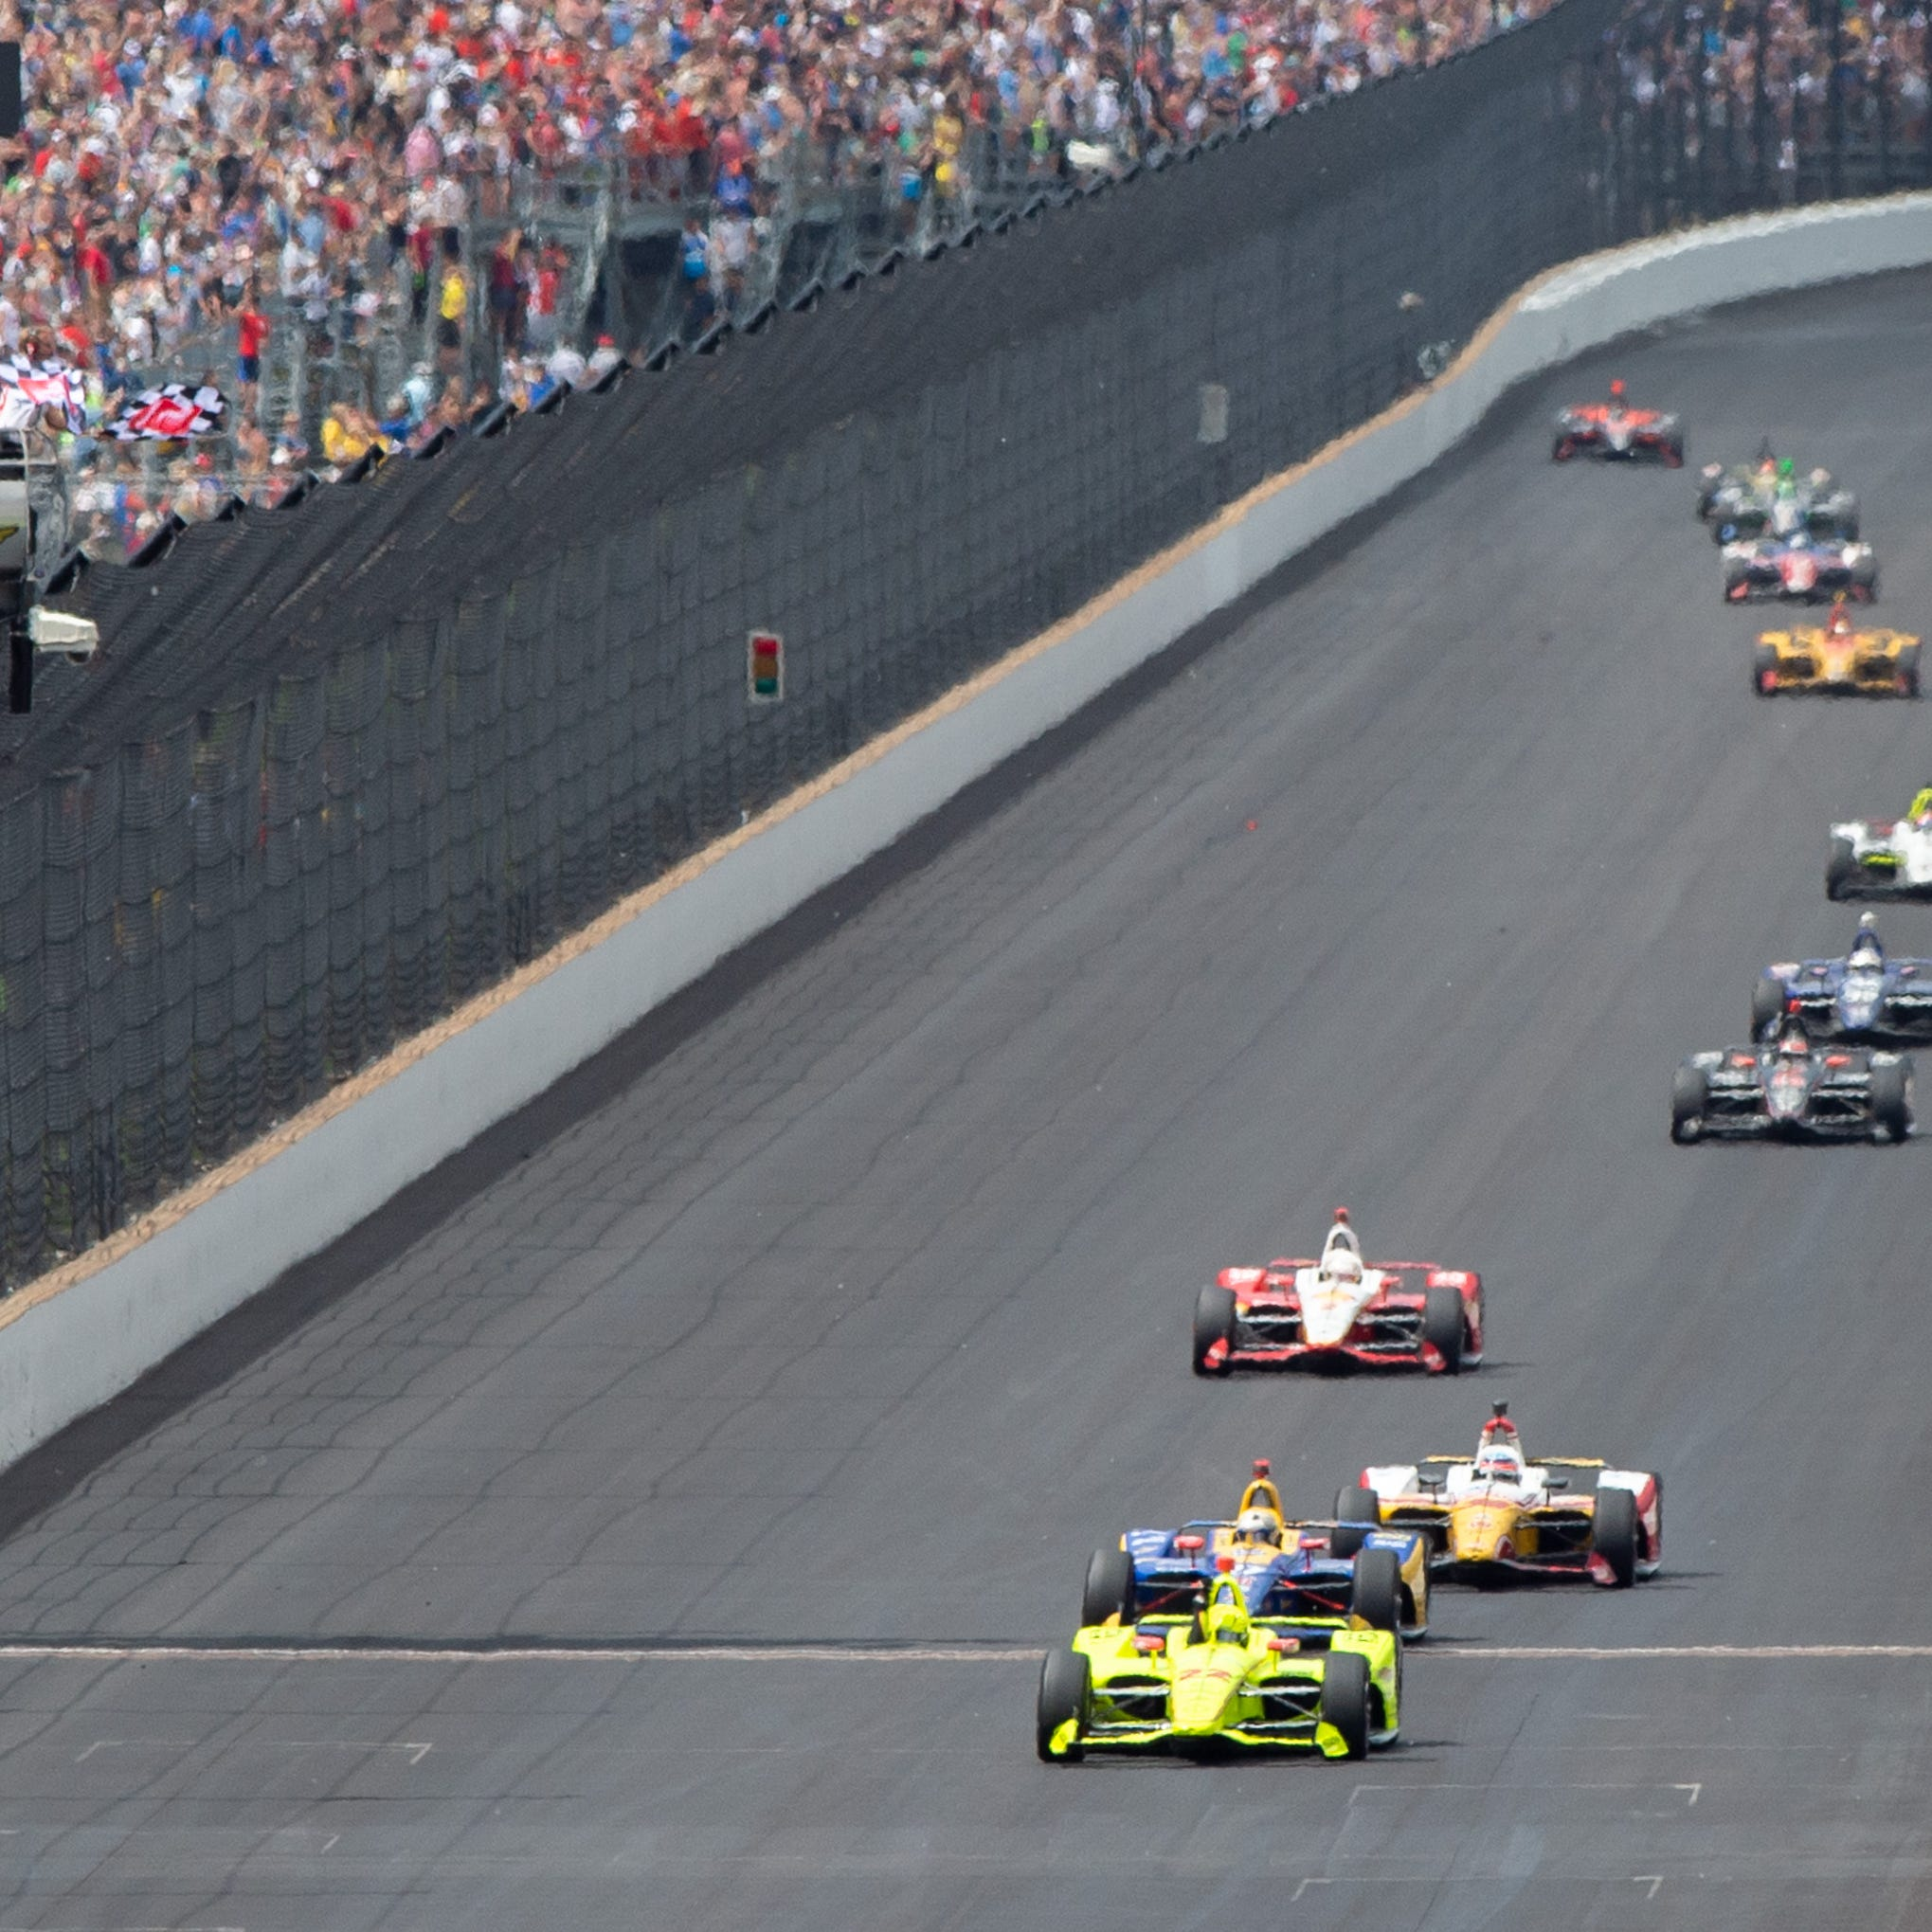 Insider: Simon Pagenaud out-battles Alexander Rossi in dramatic Indy 500 finish